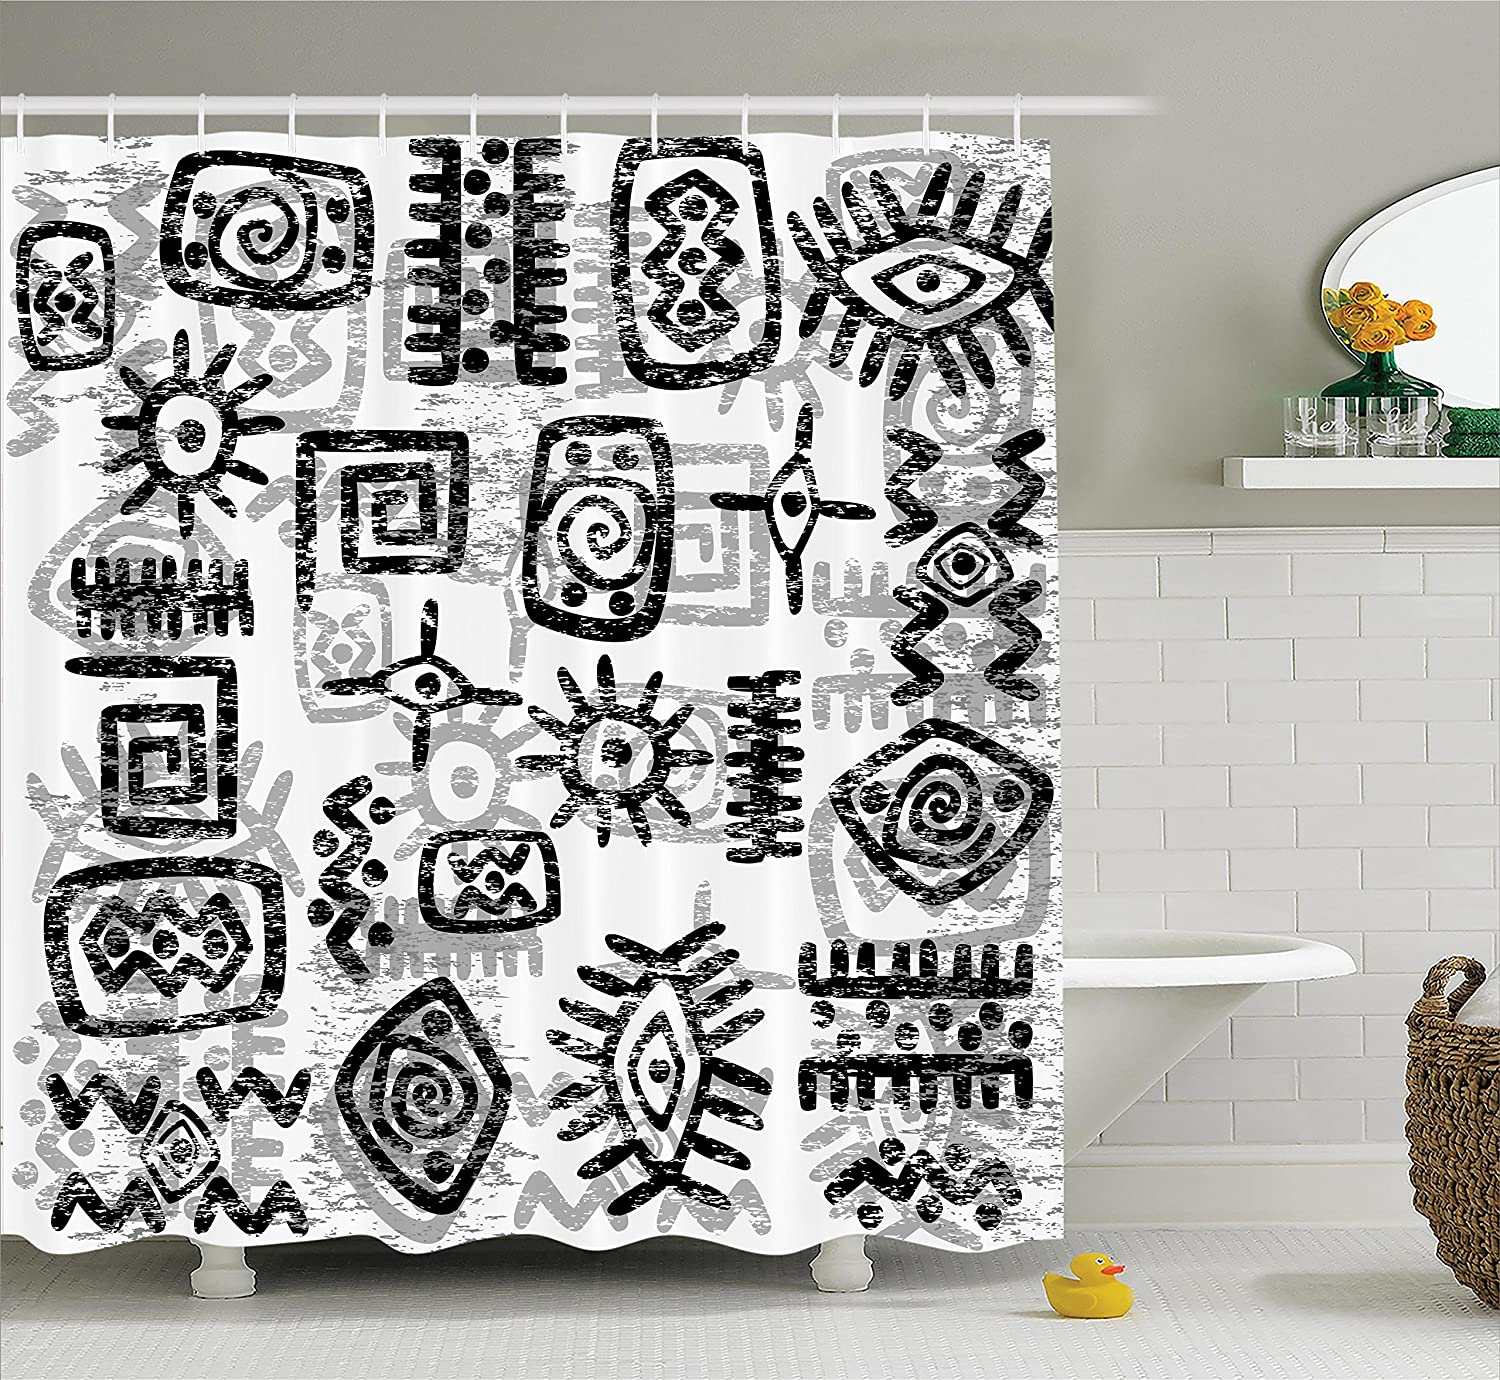 Ambesonne Grunge Home Decor Collection, Grunge Style Art with Ancient African Symbols Geometric Ethnic Pattern Print, Polyester Fabric Bathroom Shower Curtain, 75 Inches Long, Black White